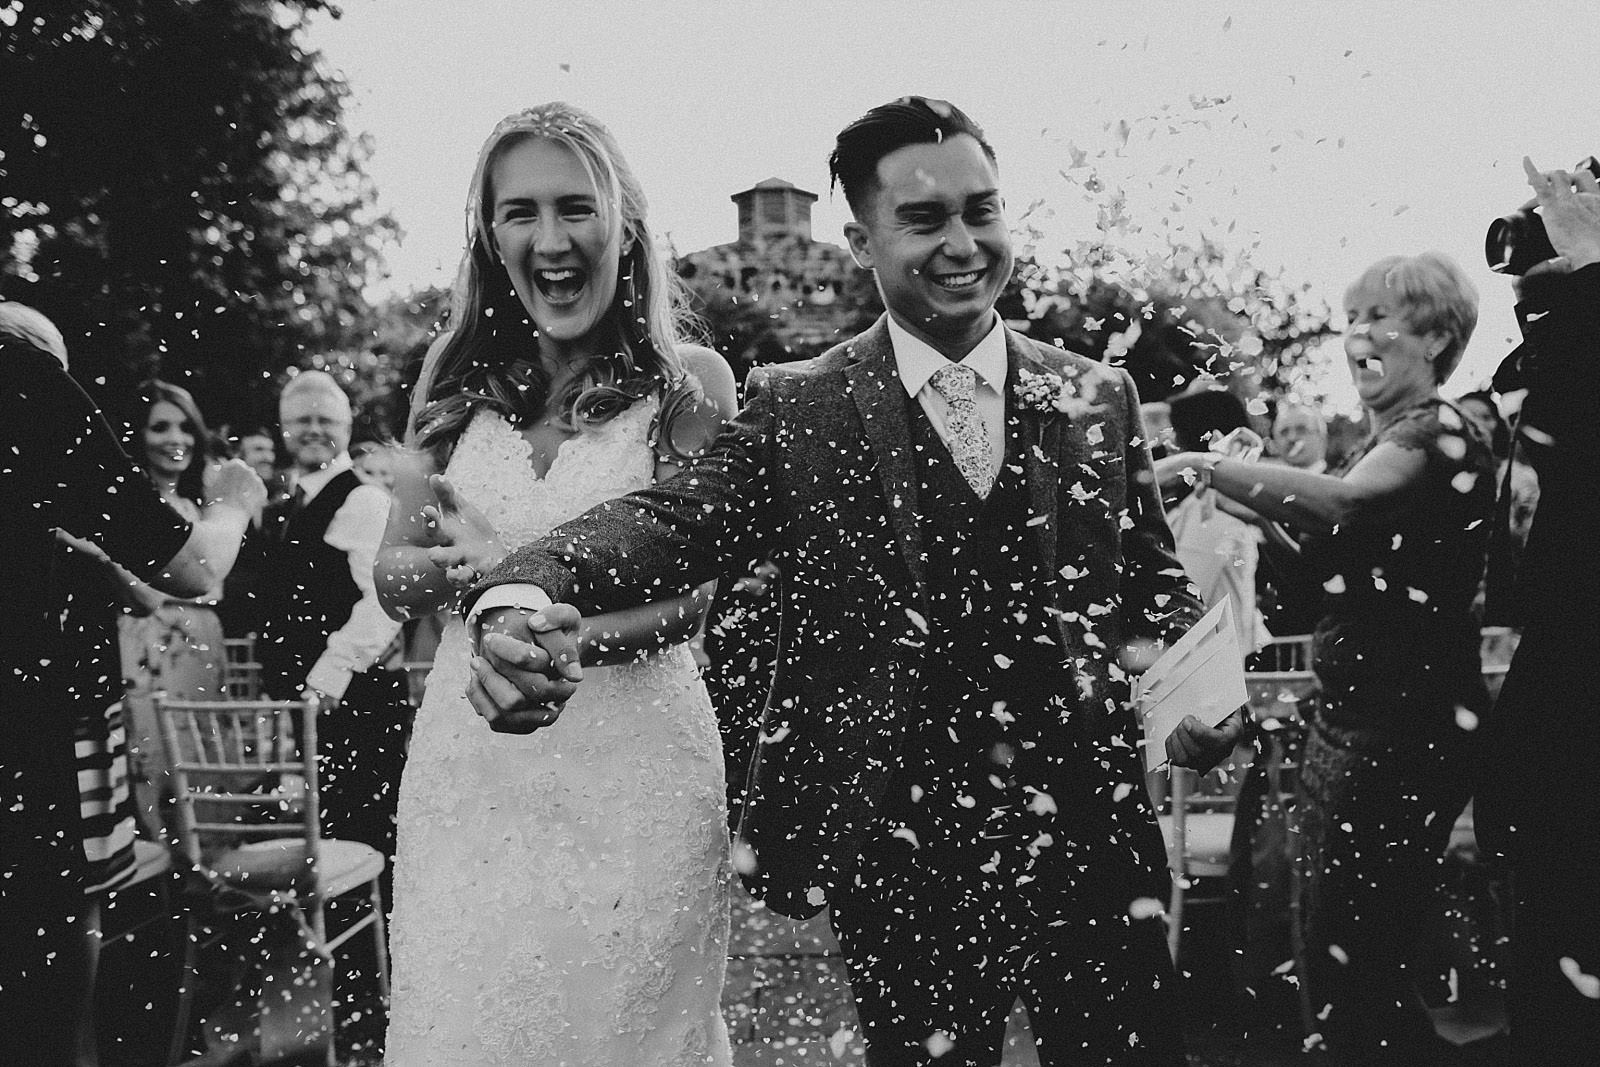 bride and groom get confetti thrown on them